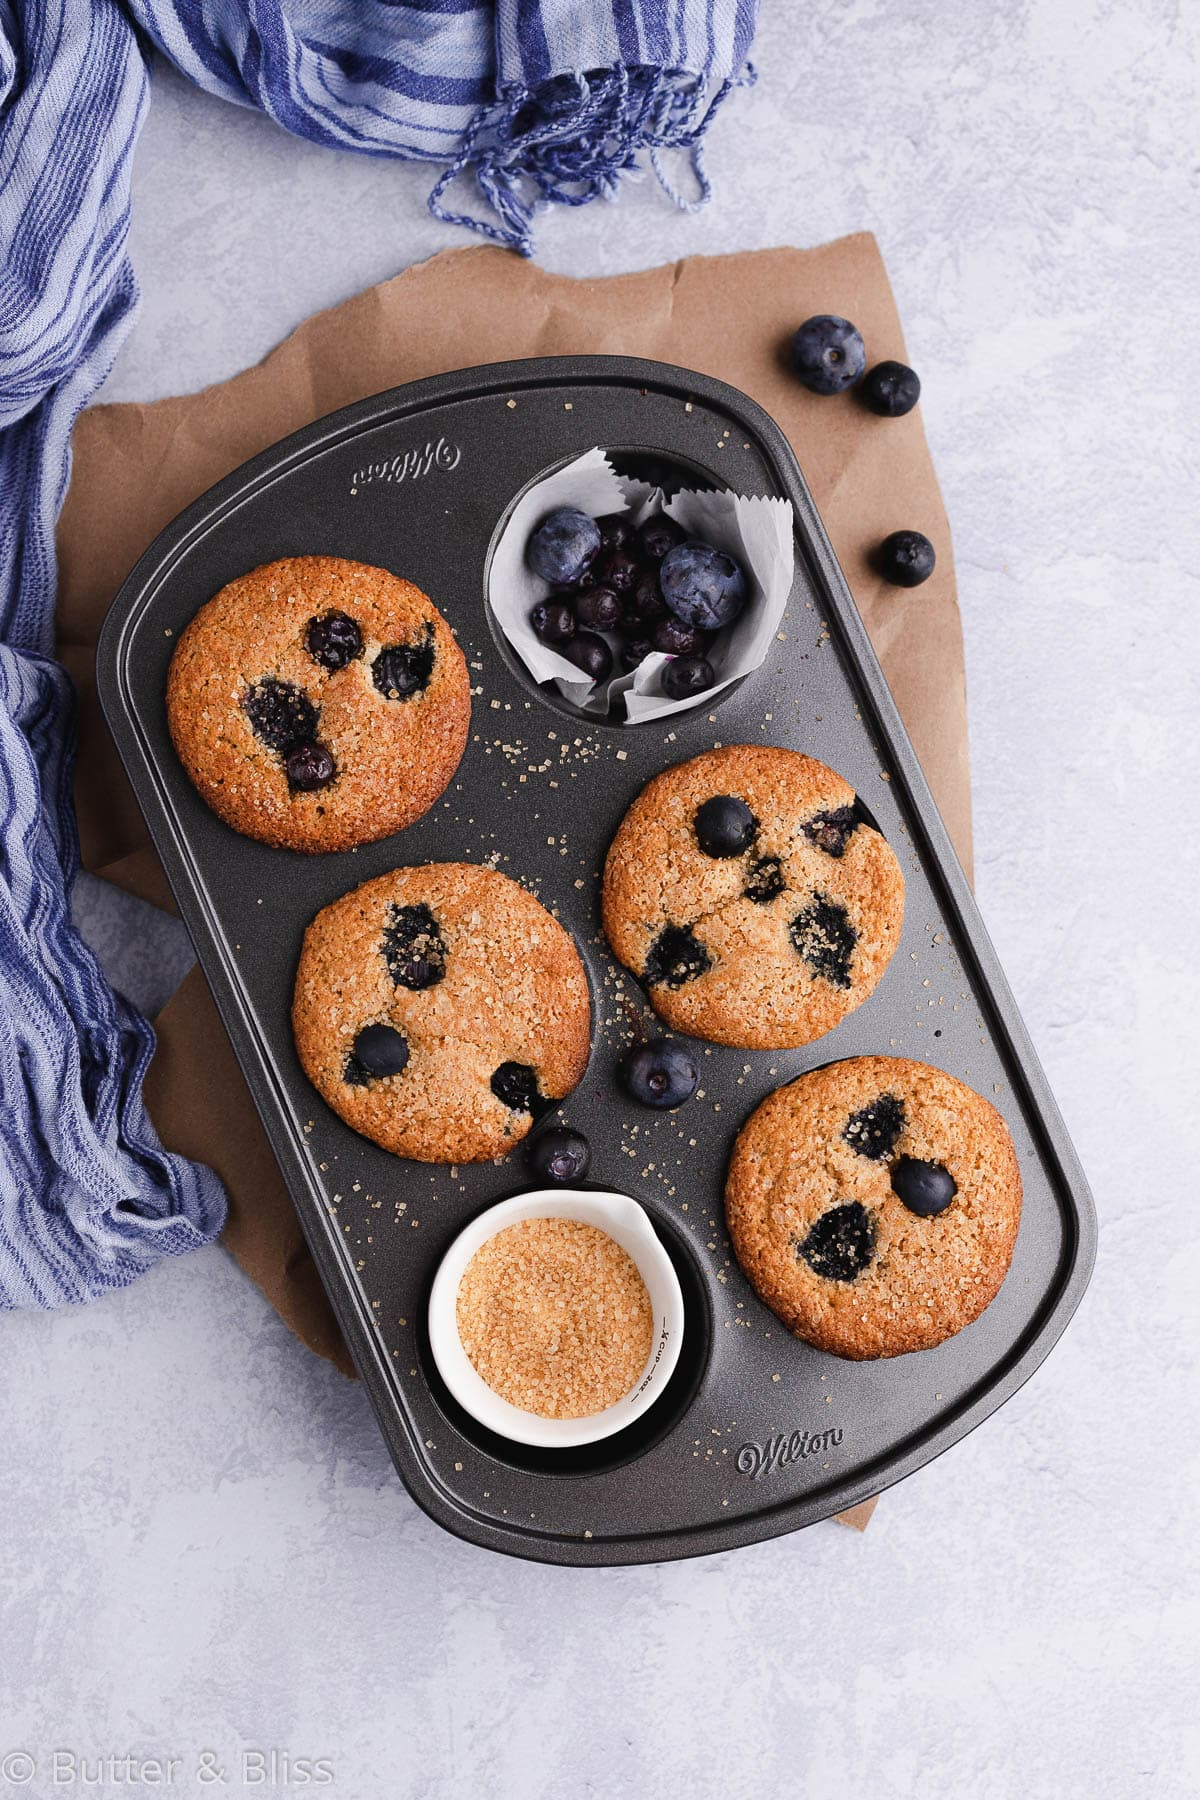 Blueberry muffins in a muffin pan